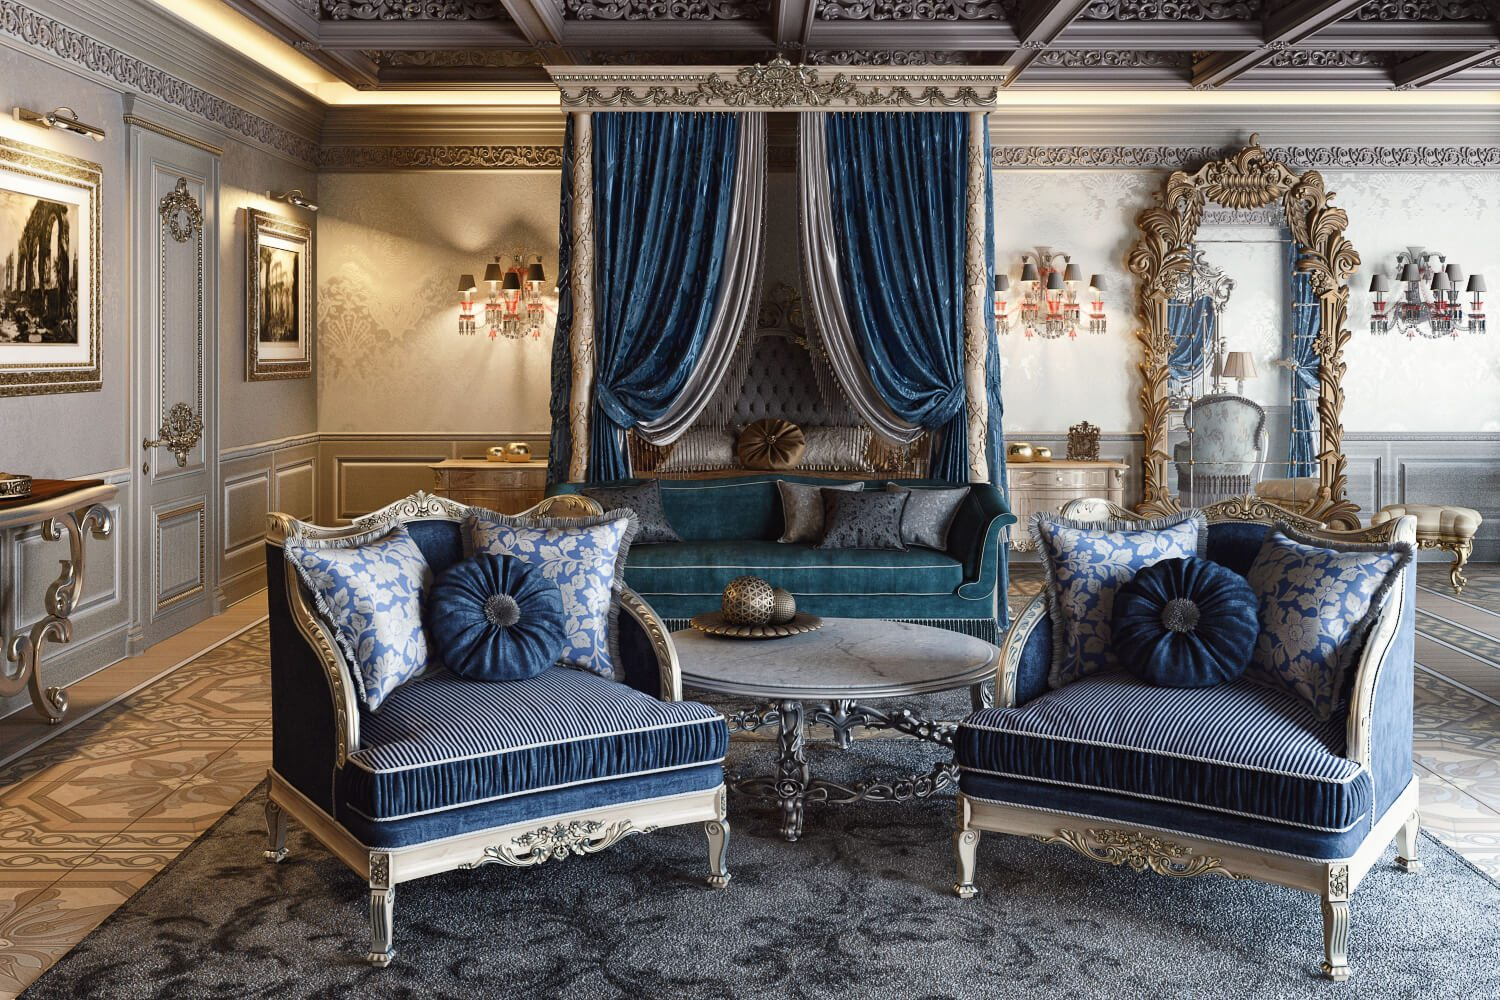 3D Visualization of a Luxury Classic Interior